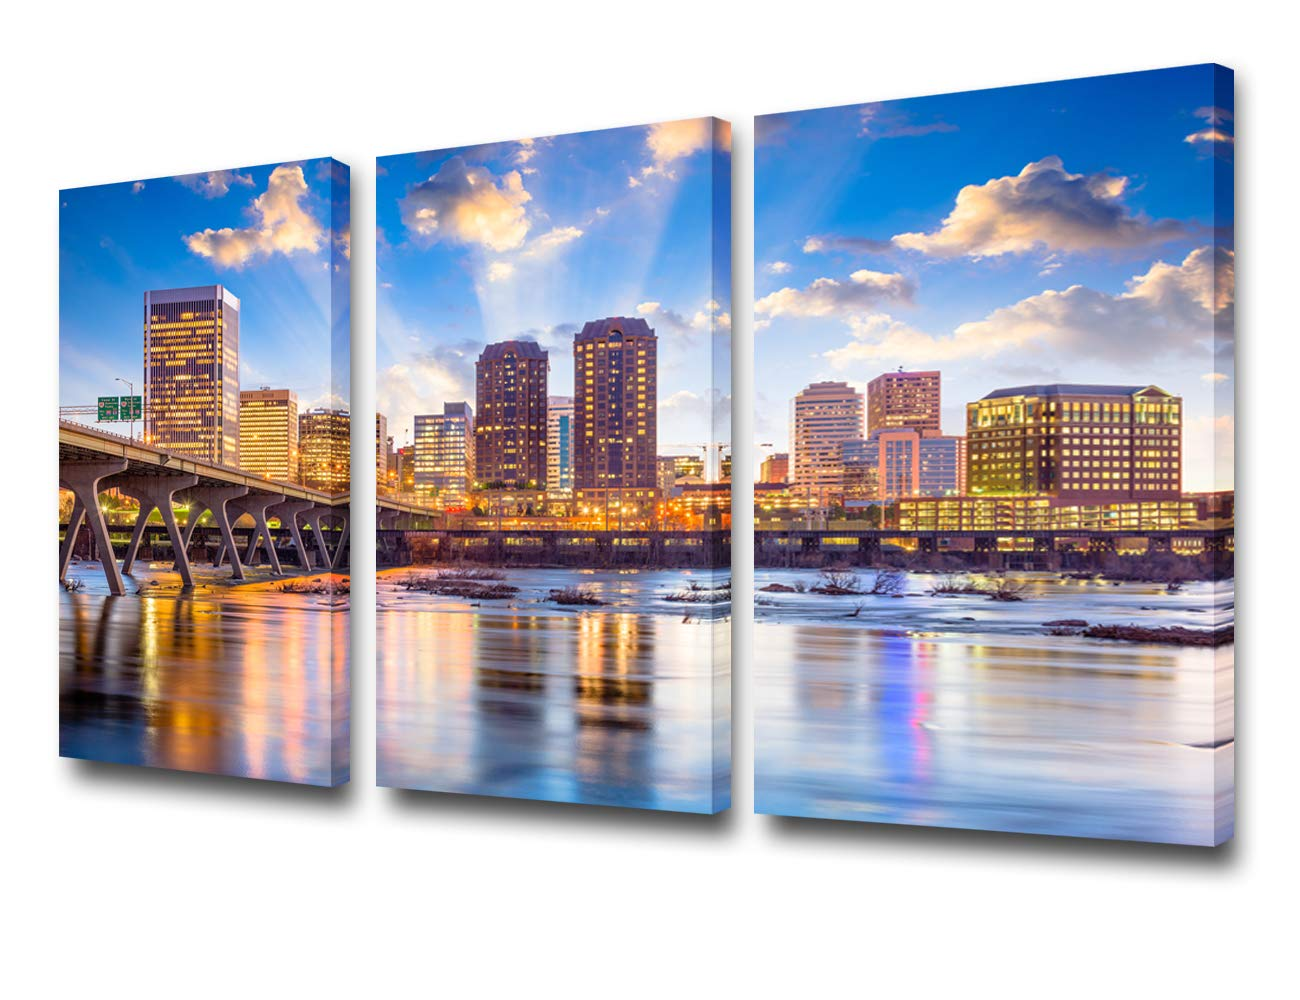 TUMOVO 3 Piece Canvas Wall Art for Living Room - Richmond, Virginia, USA Downtown Skyline on The James River - Modern Home Decor Stretched and Framed Ready to Hang - 24'' x 12'' x 3 Panels